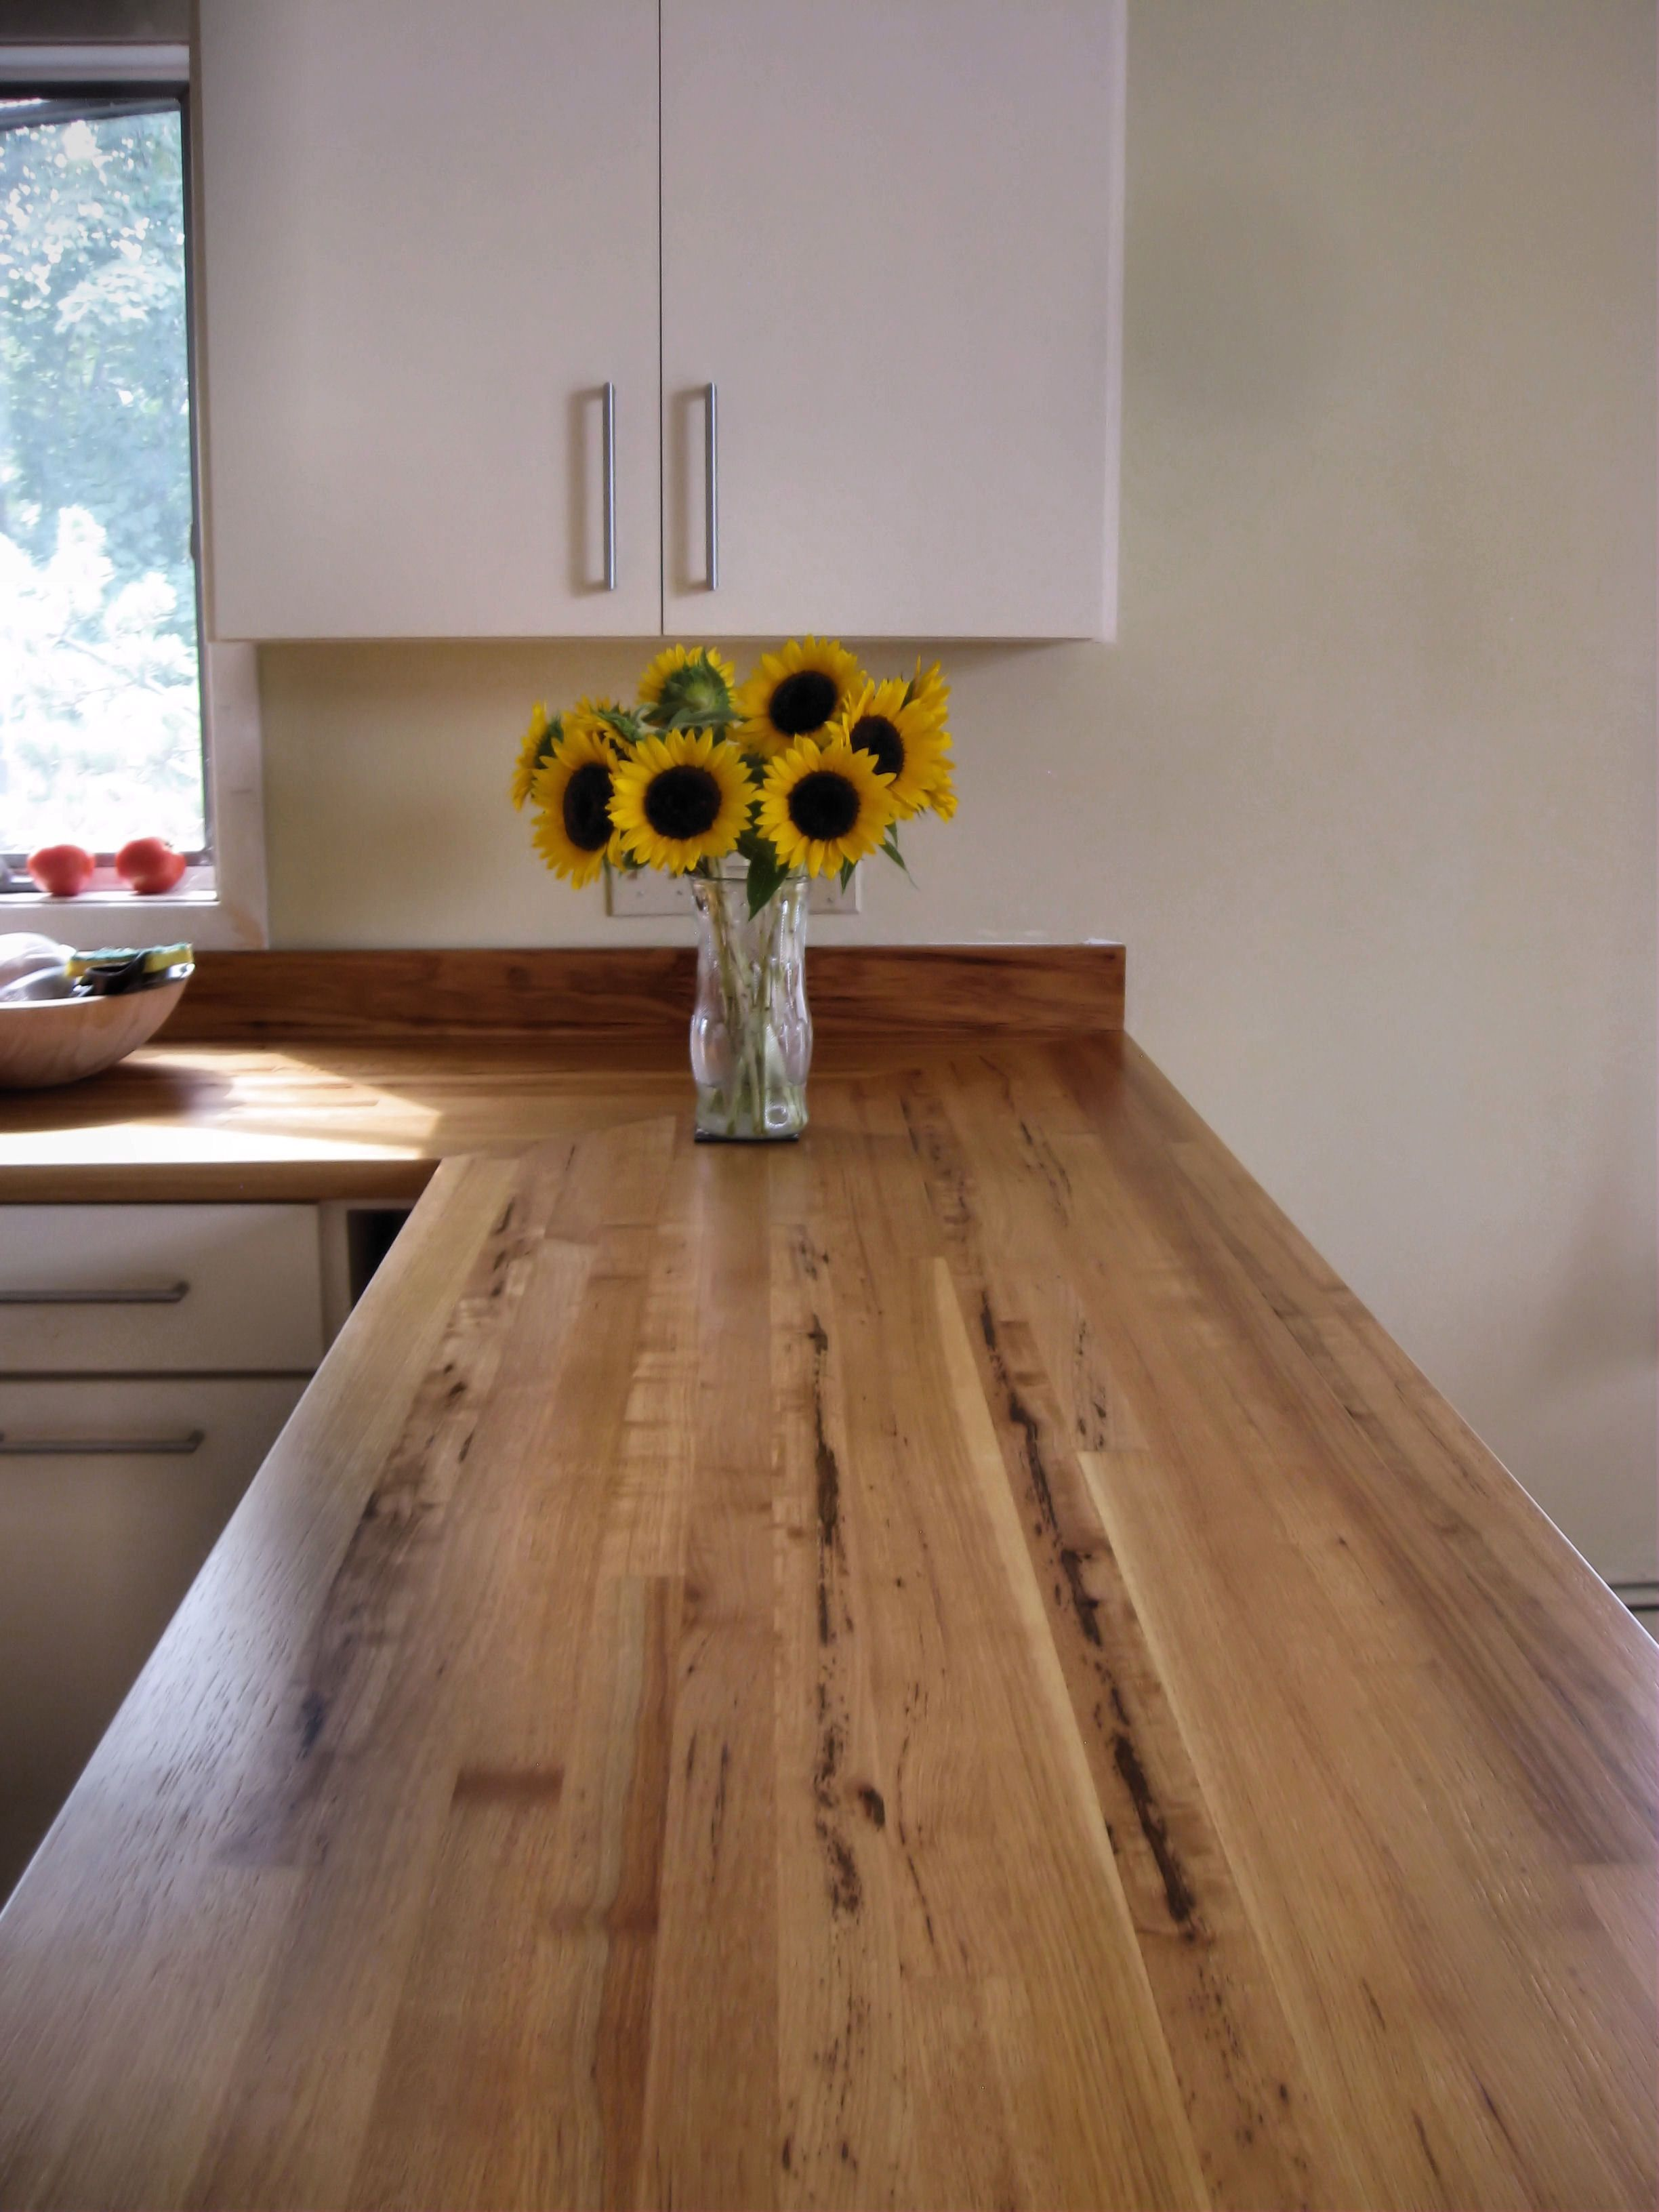 Pecan Wood Countertop Photo Gallery Wood Countertops Pecan Wood